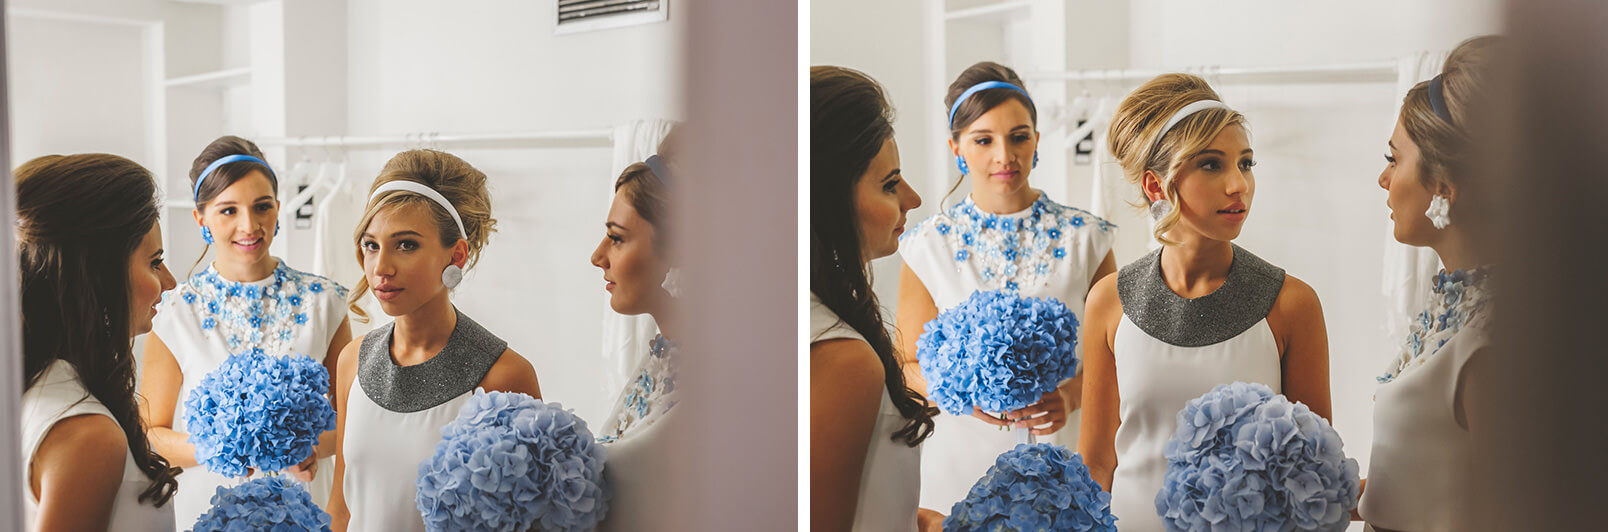 The bride and the bridesmaids: a true 1960s mood.